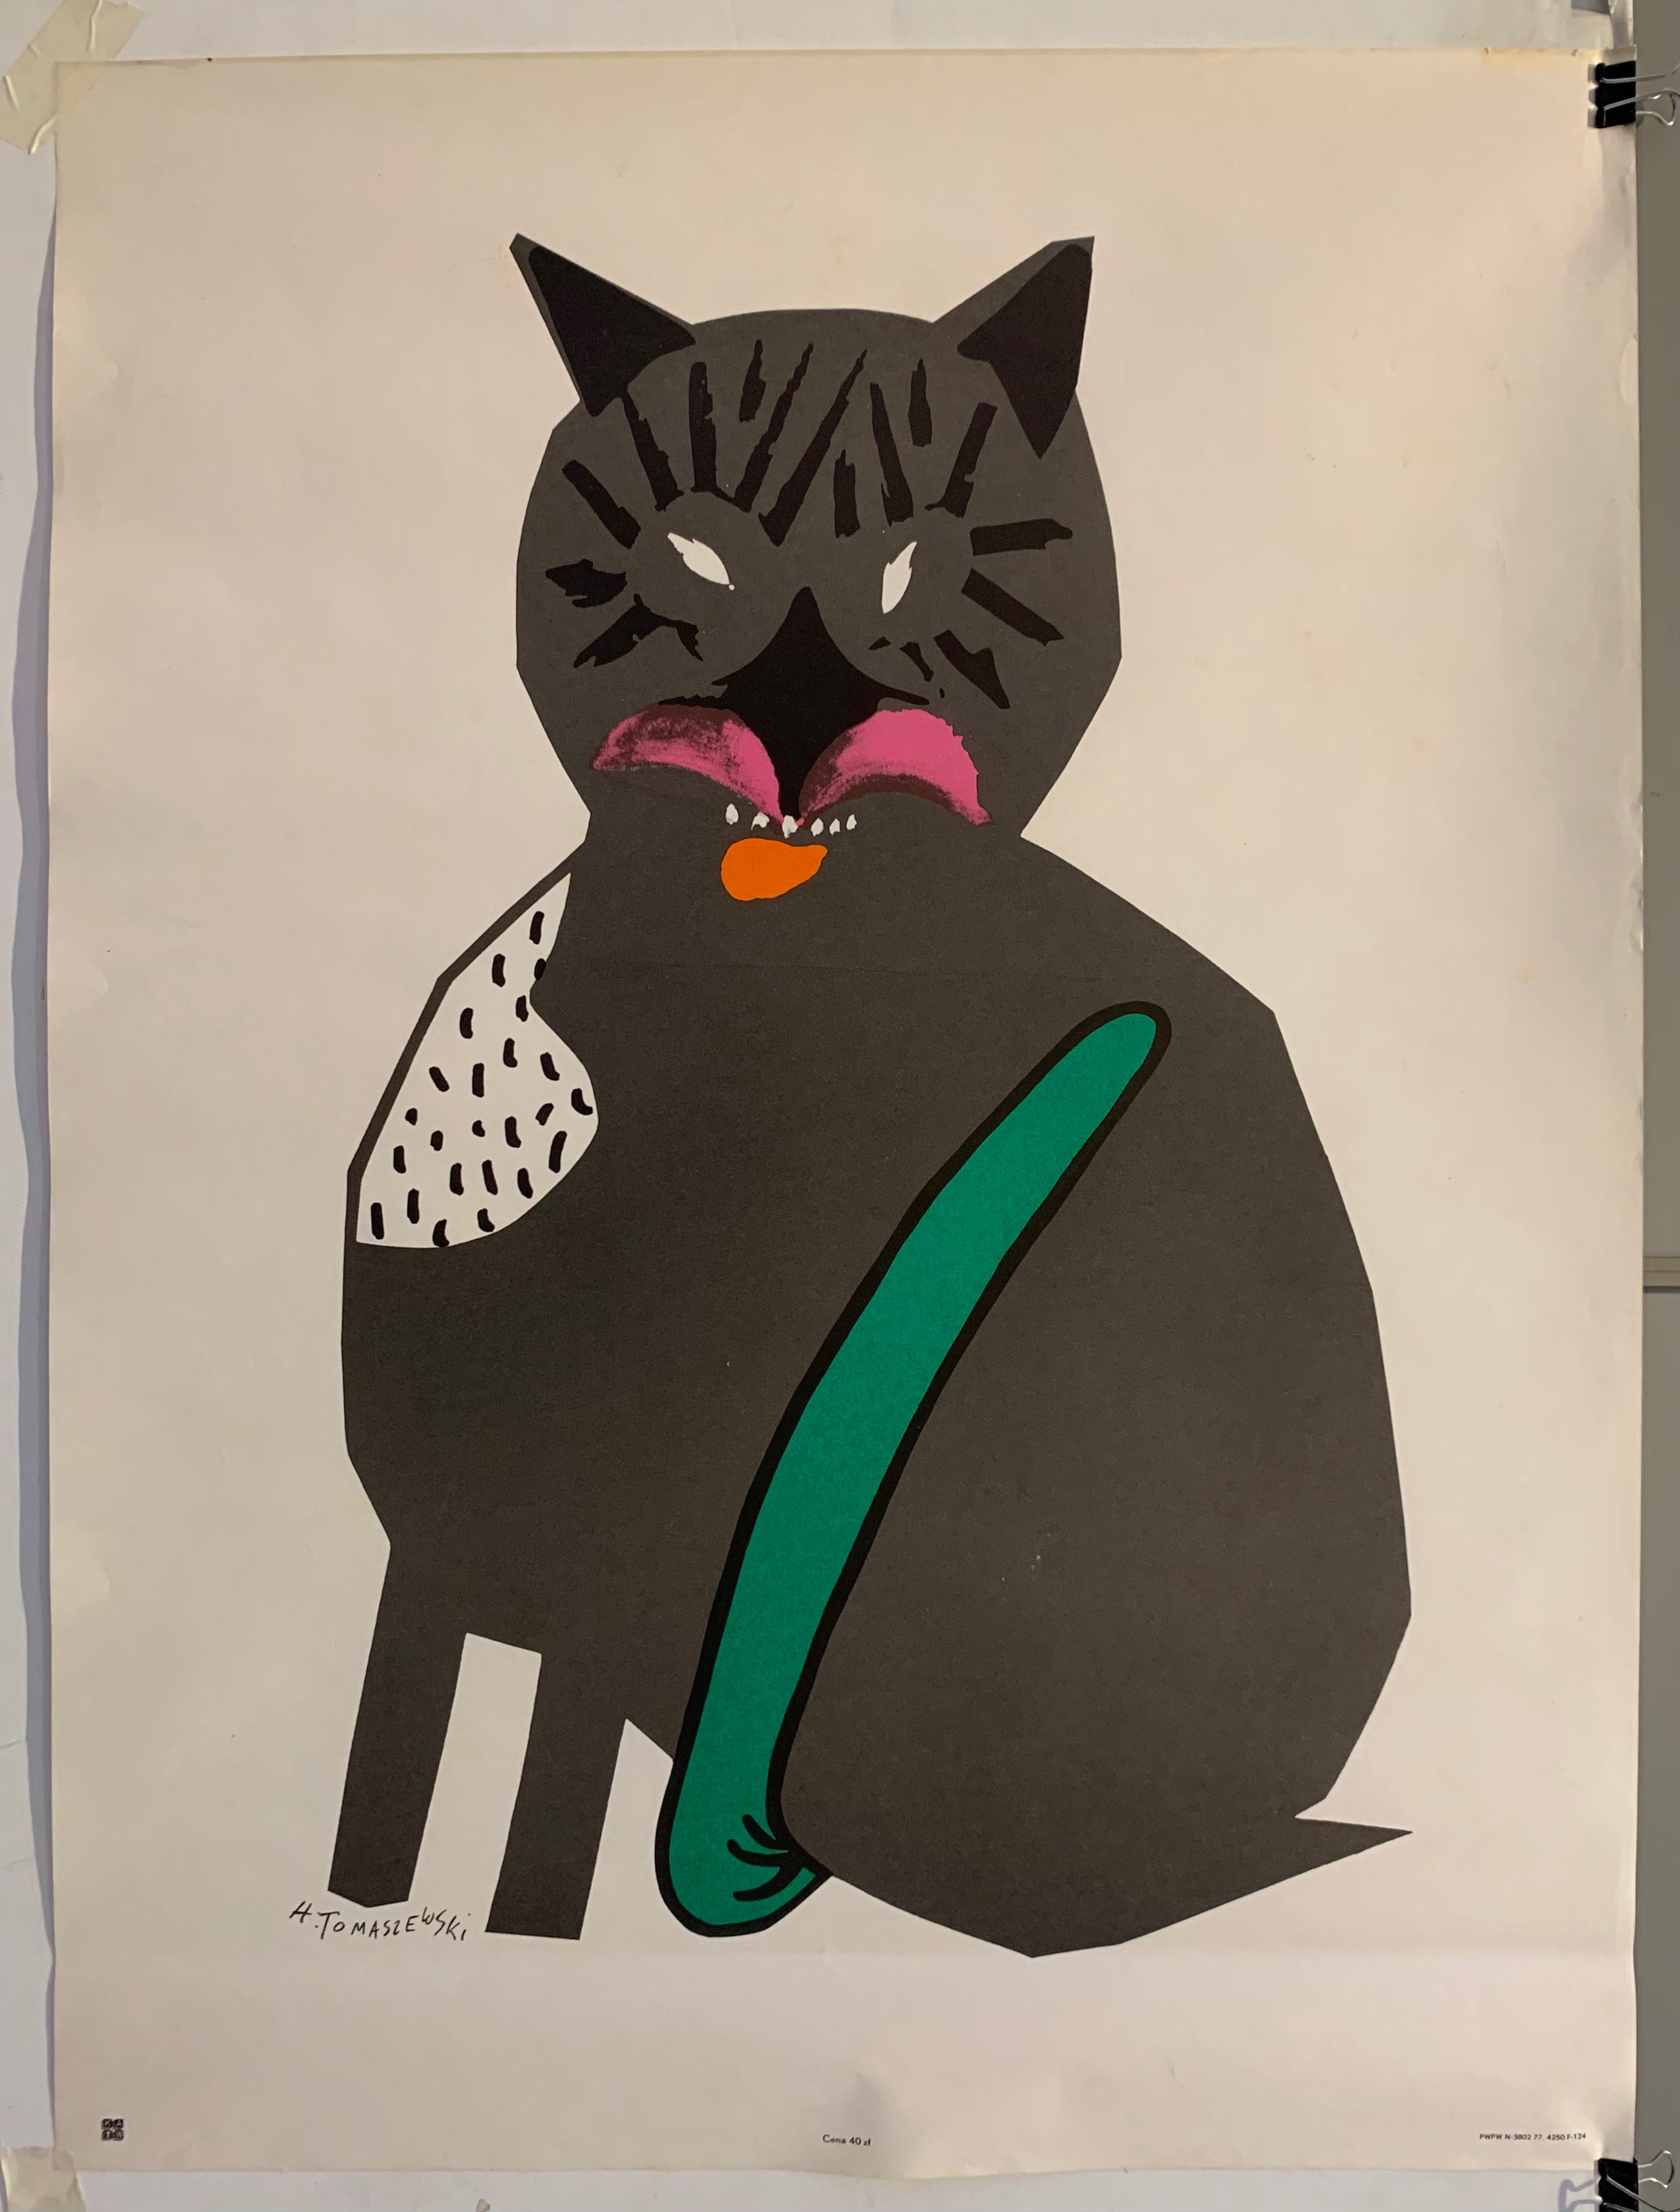 Poster of a grey cat illustration